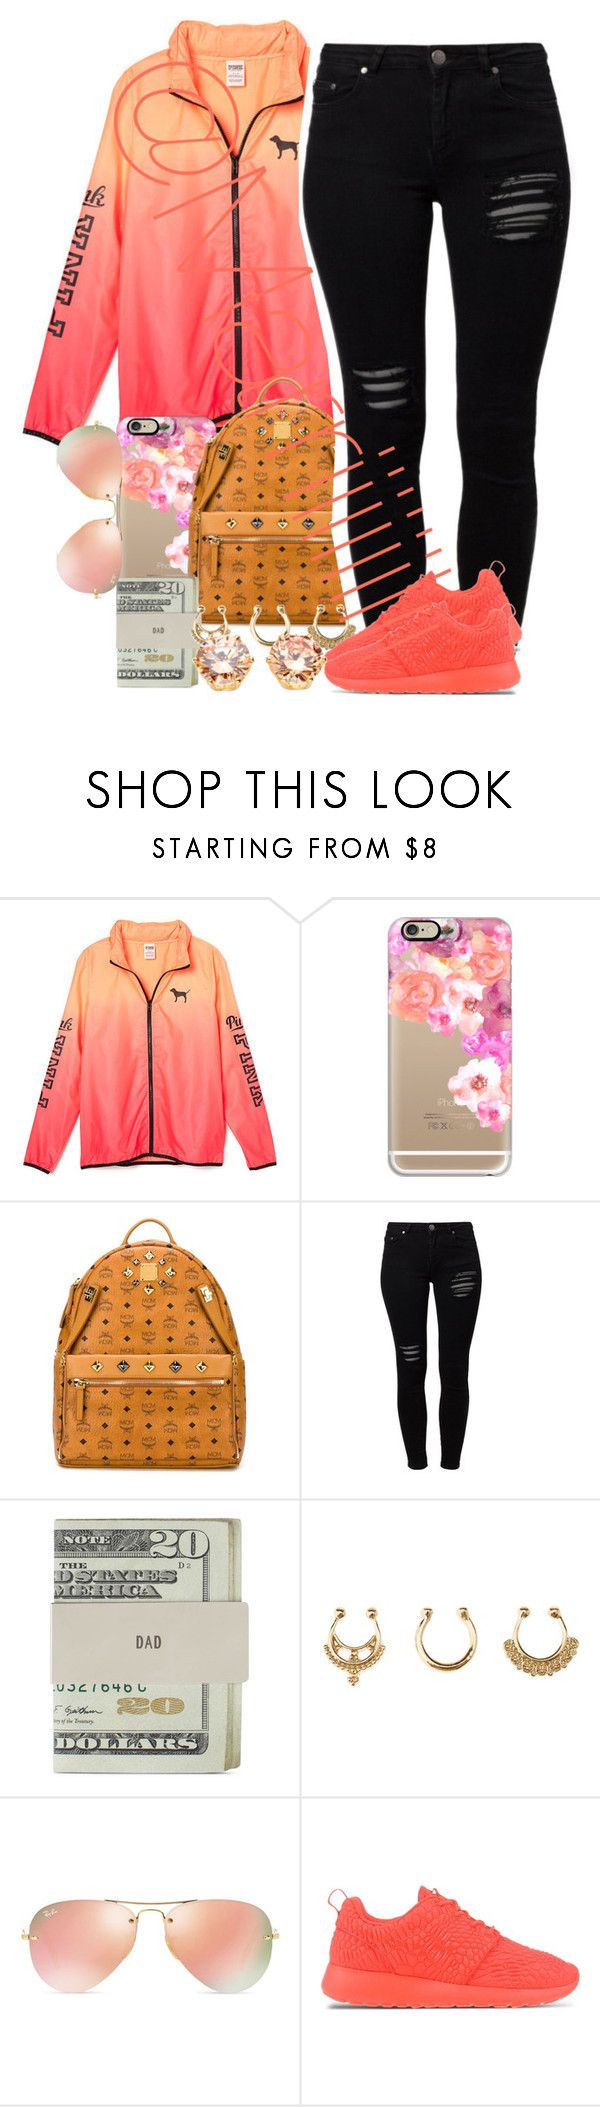 """Coral"" by marriiiiiiiii ❤ liked on Polyvore featuring Casetify, MCM, Gestuz, Jack Spade, Charlotte Russe, Ray-Ban and NIKE"